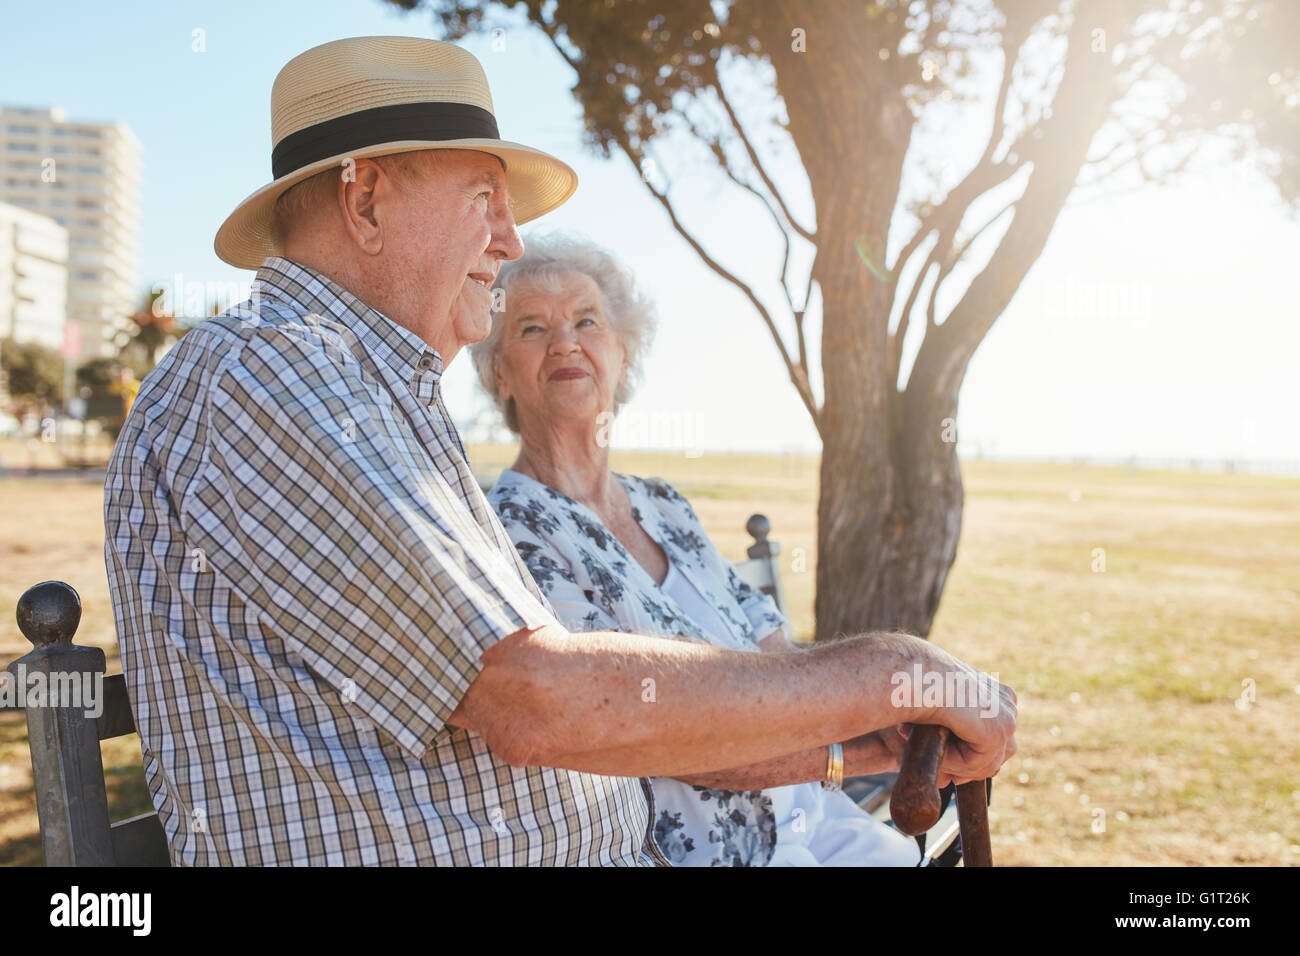 Side view shot of elderly man and woman sitting on a bench outdoors. Senior couple sitting on a park bench. - Stock Image